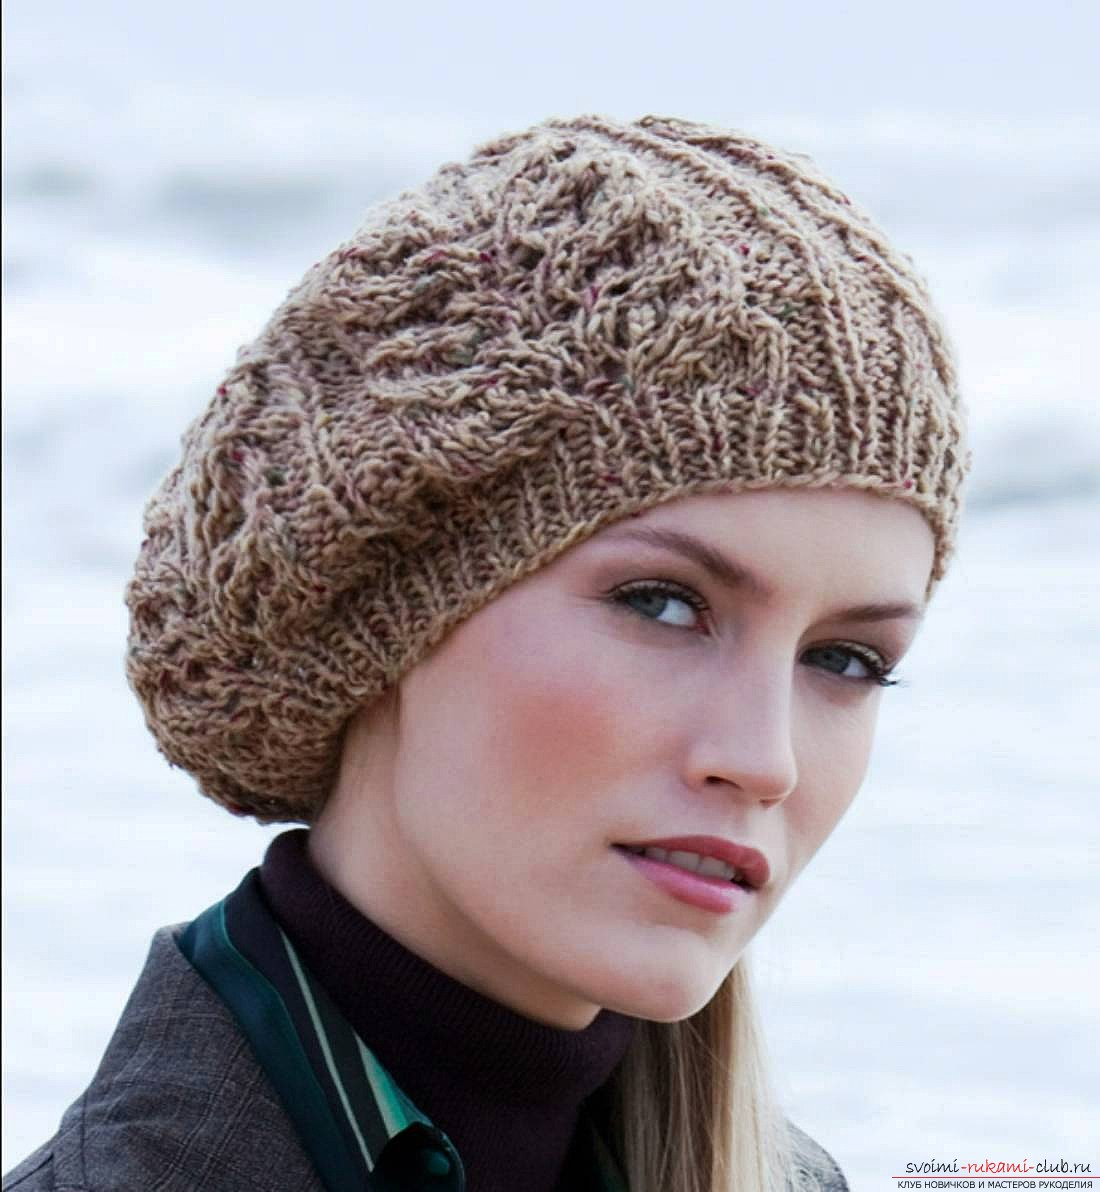 knitted needles for women autumn beret. Picture №3